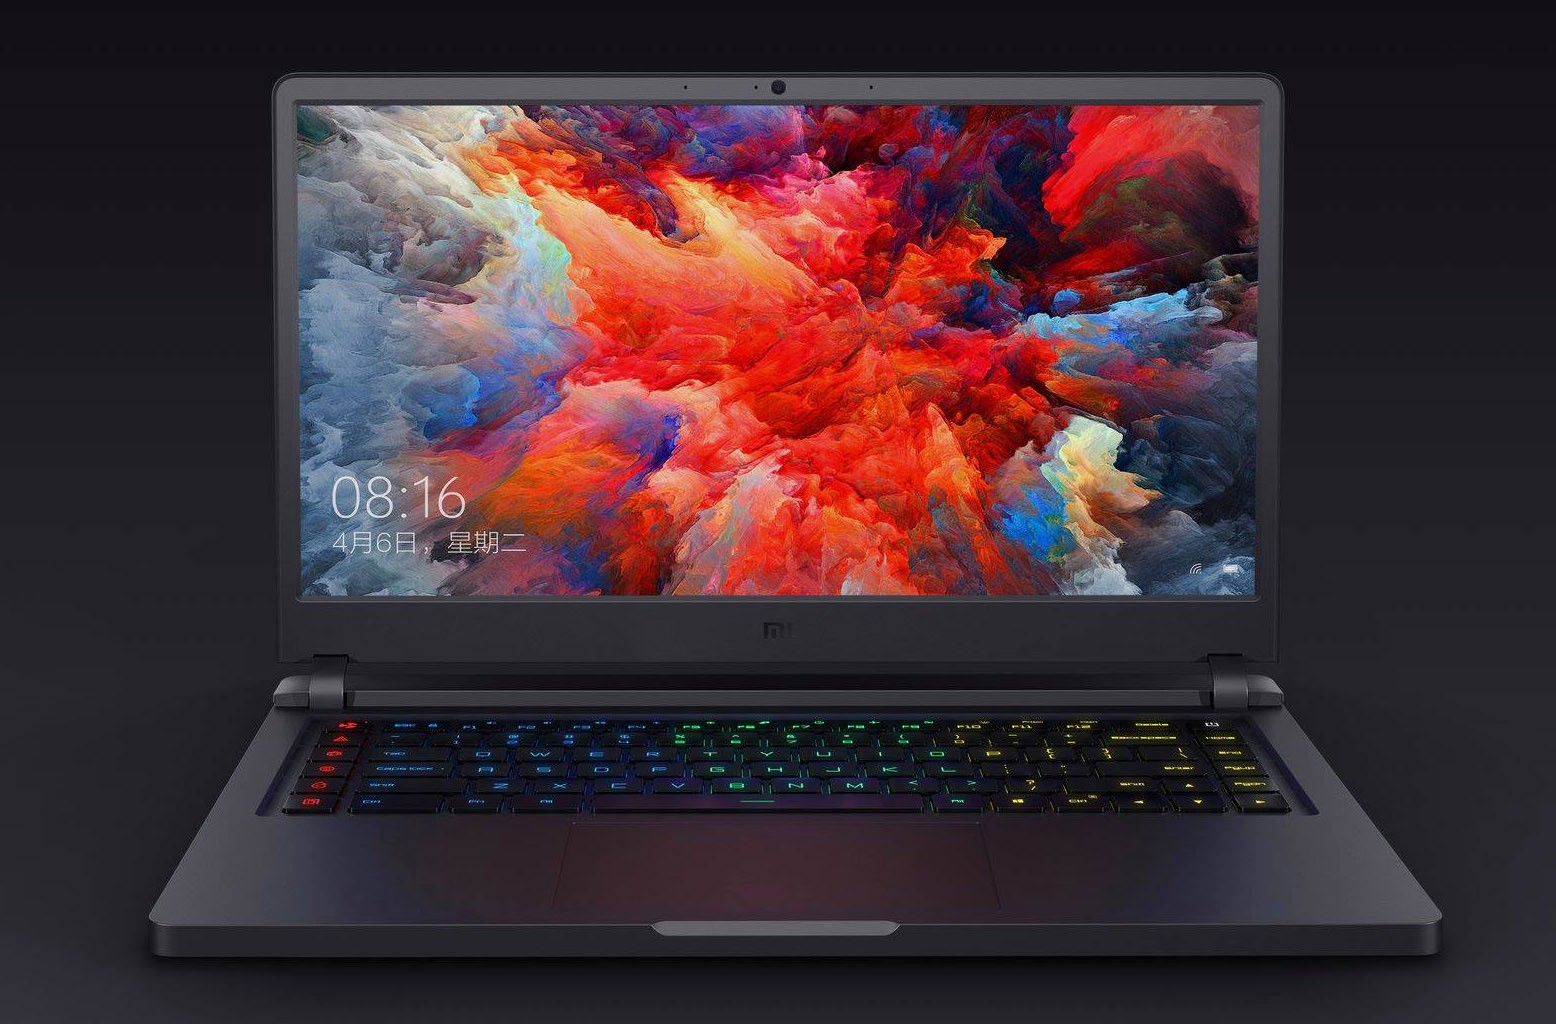 Image result for Xiaomi to Launch a New Gaming Mi Notebook 2018 Powered by Intel i7 Processor on August 3